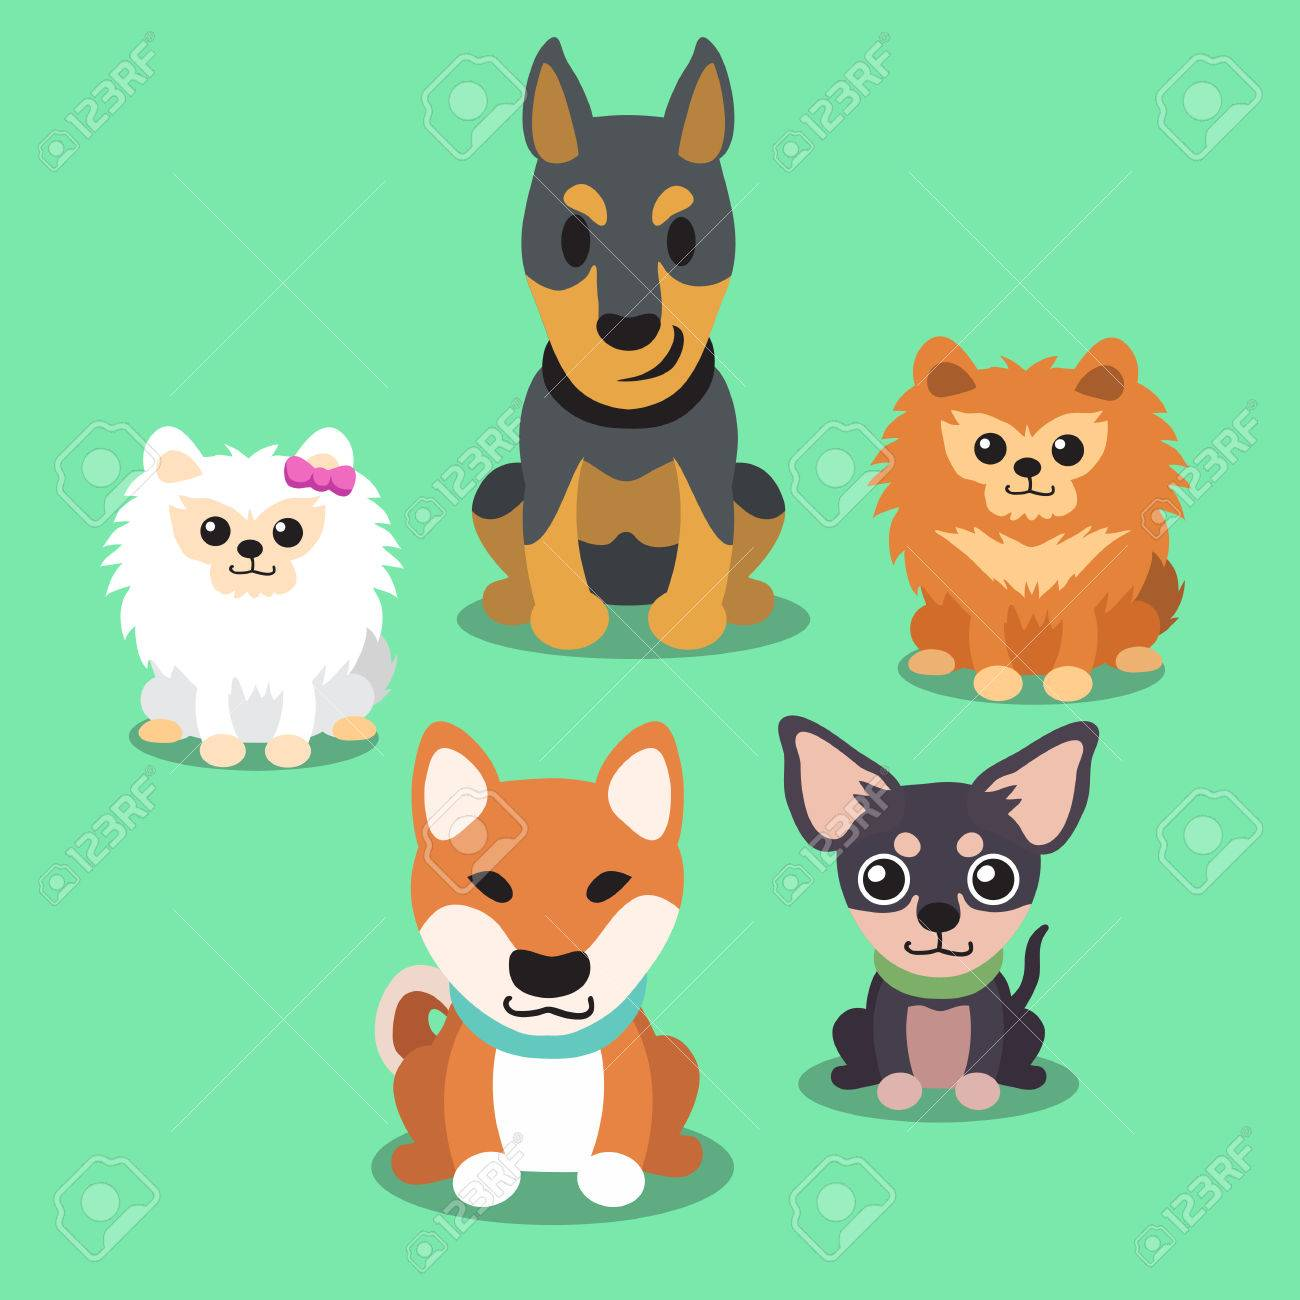 Cartoon dogs standing collection - 47275168